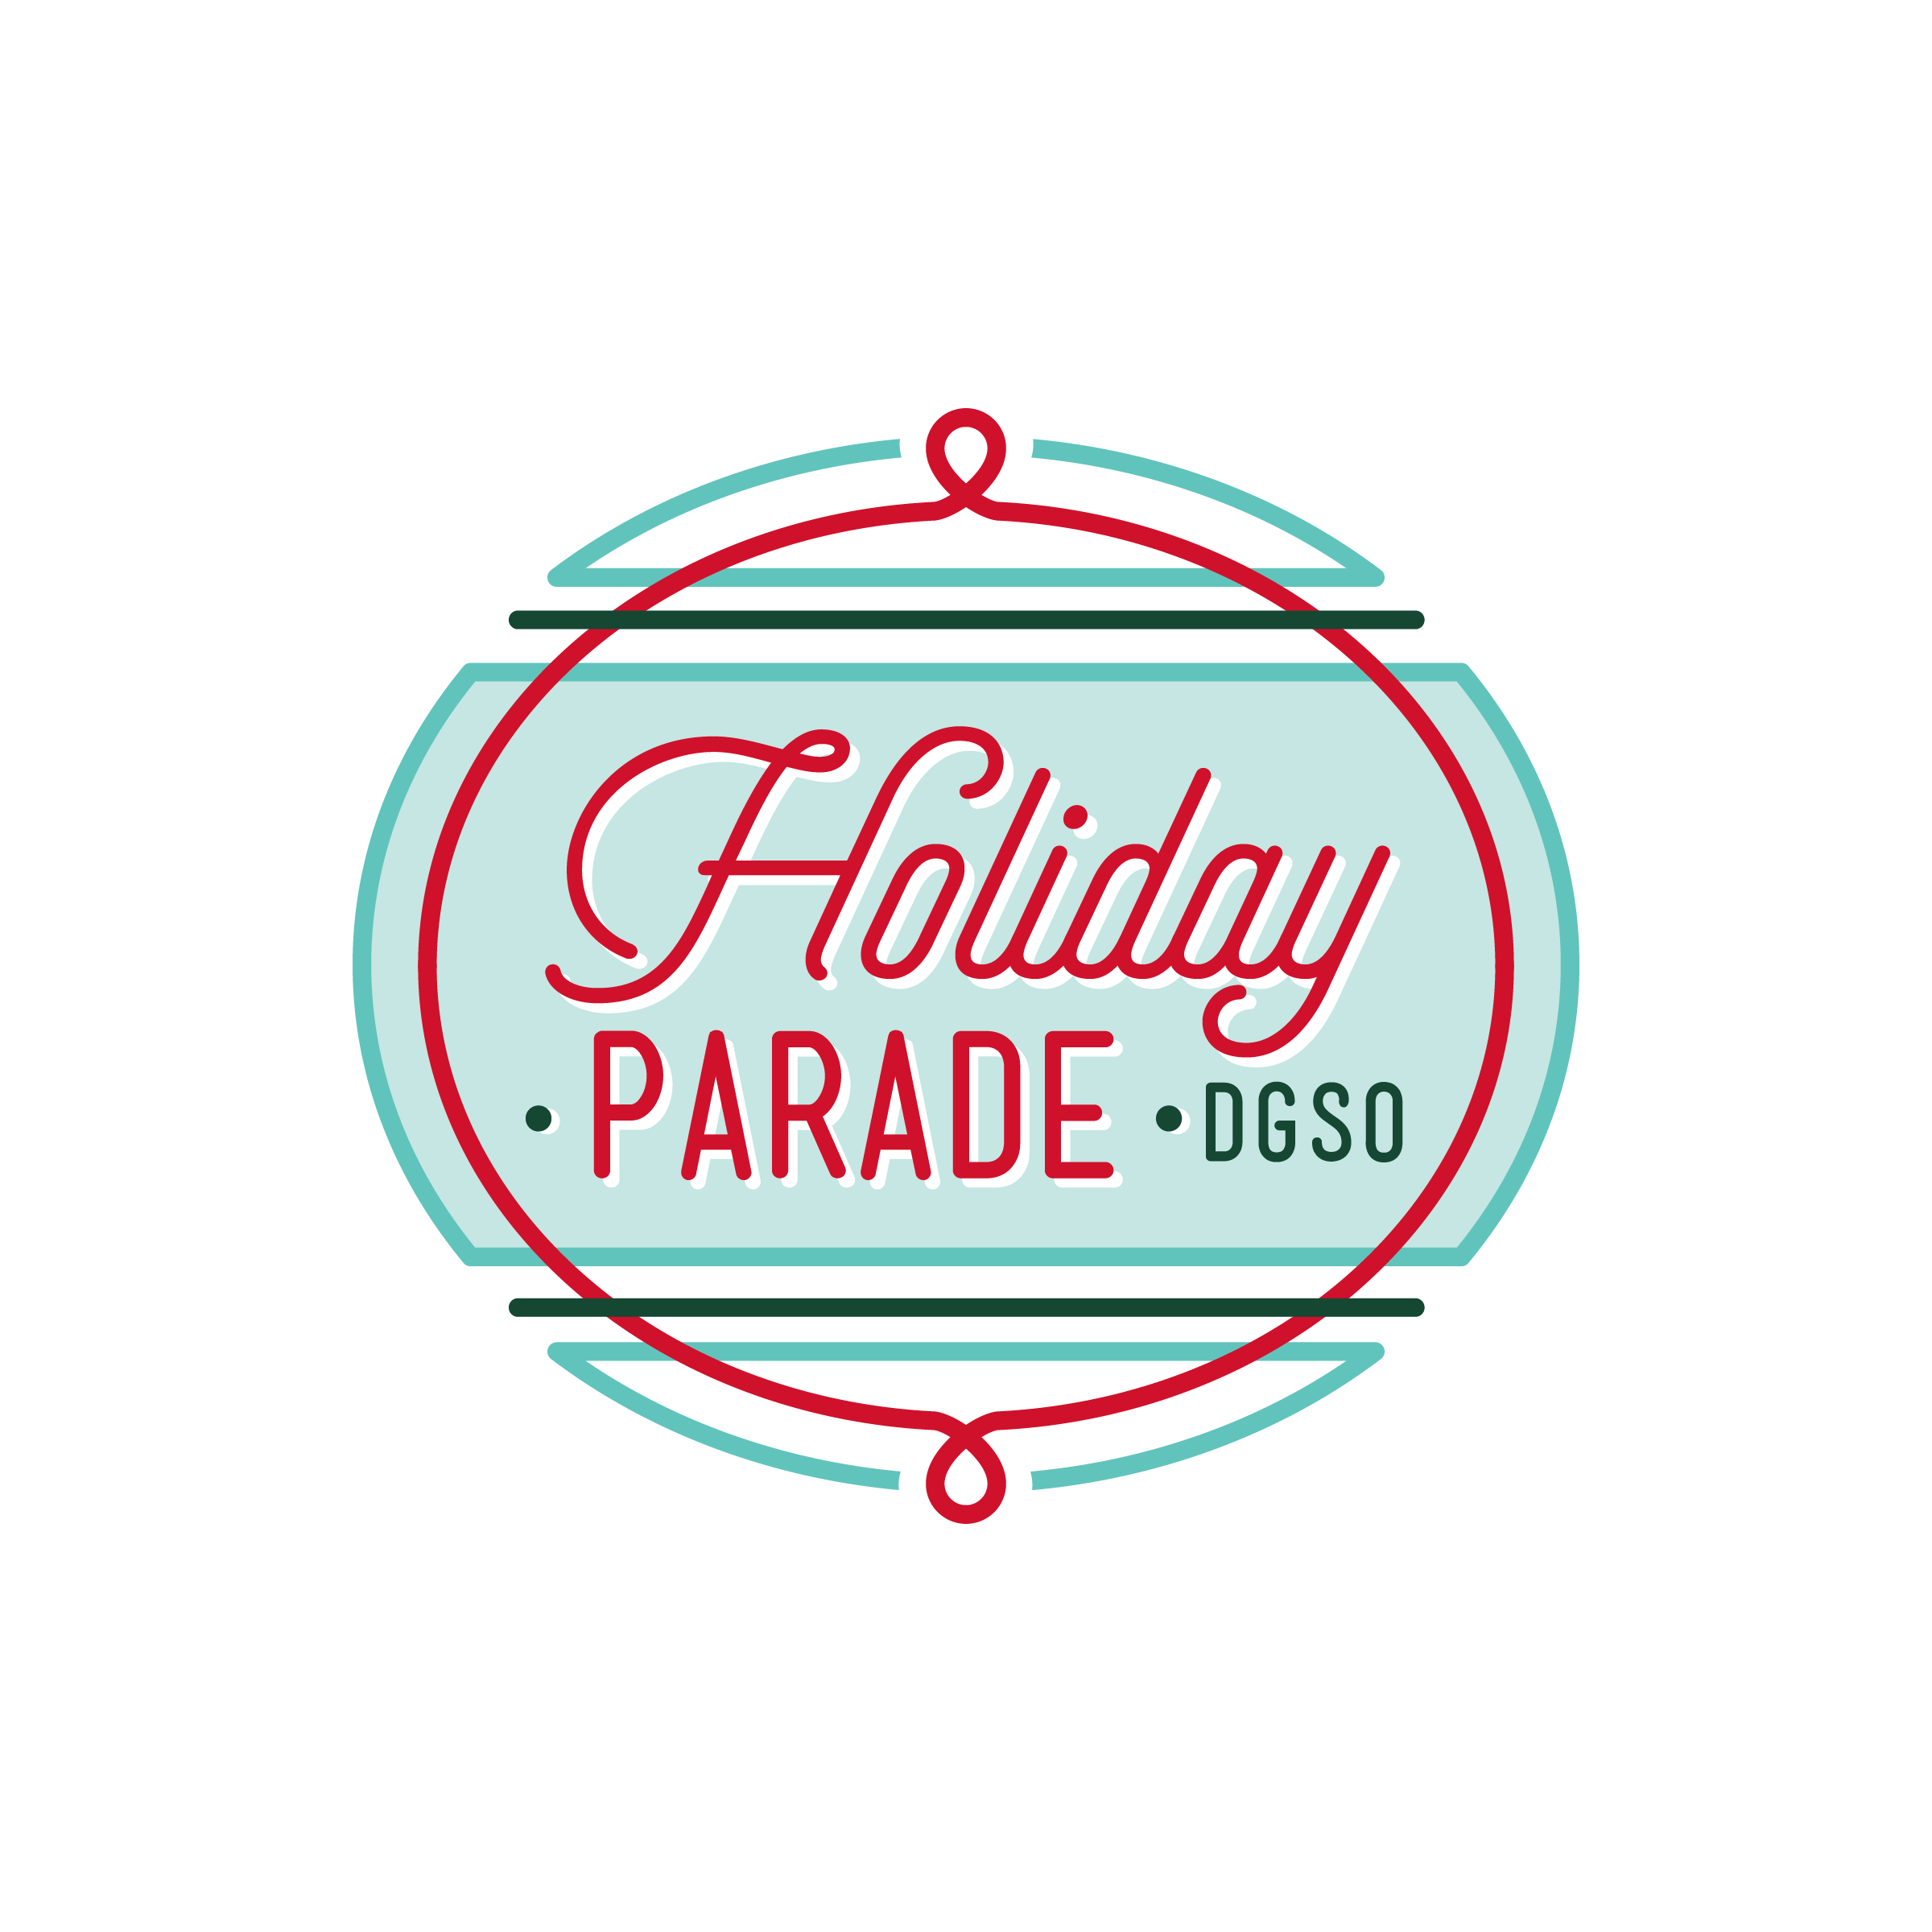 Greensboro Holiday Parade